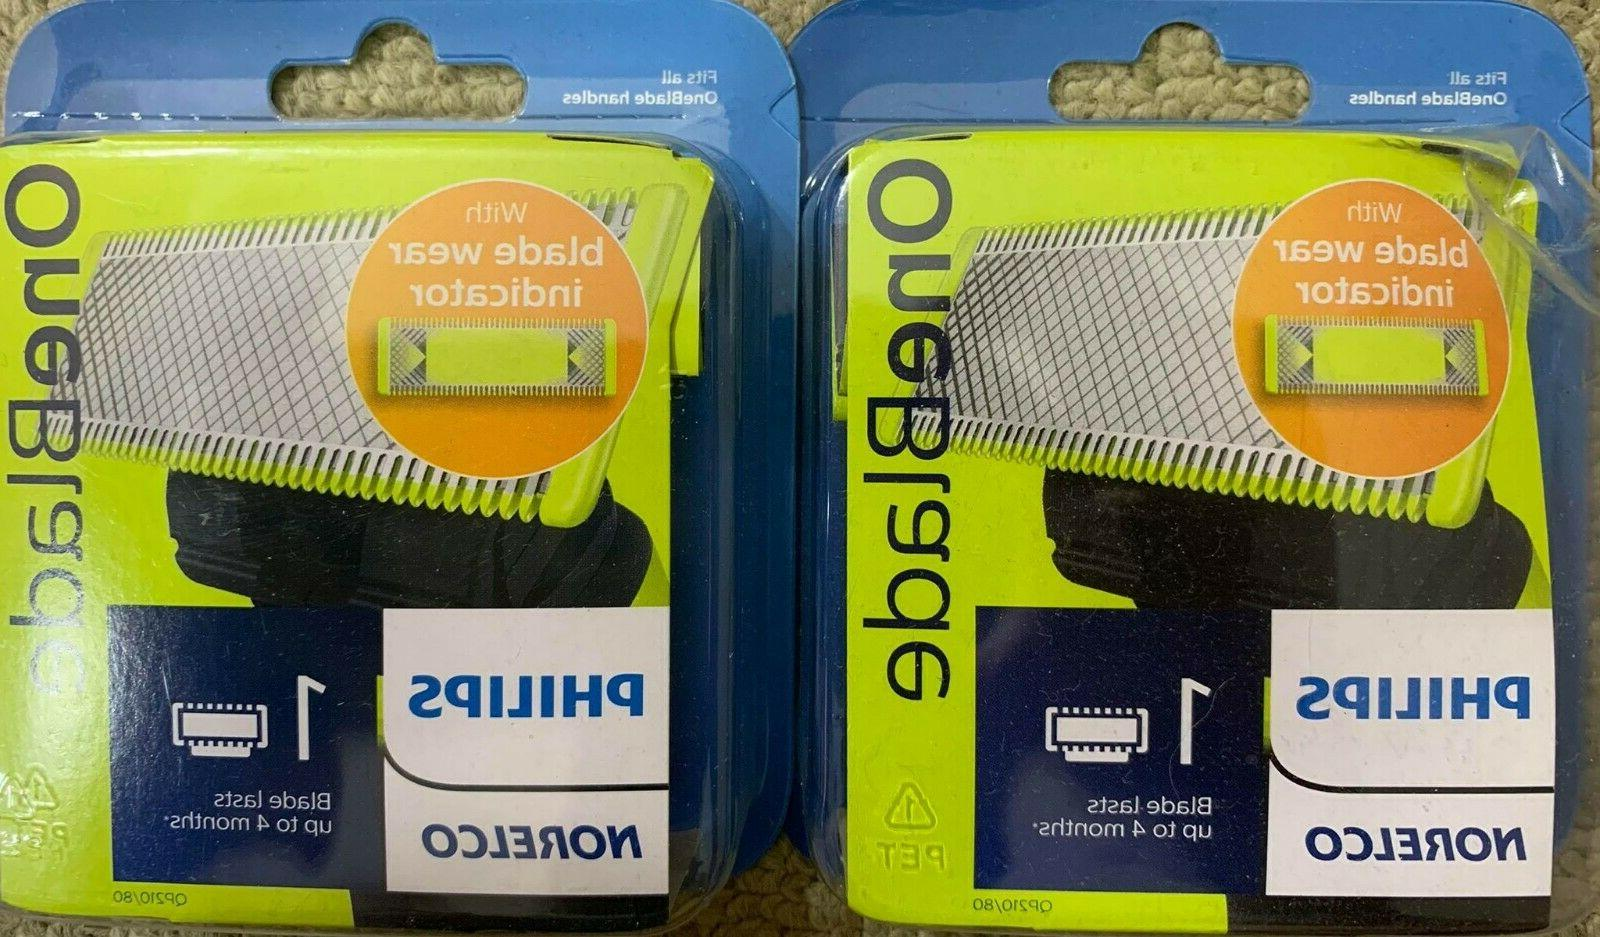 oneblade replacement blade 1 count qp210 80